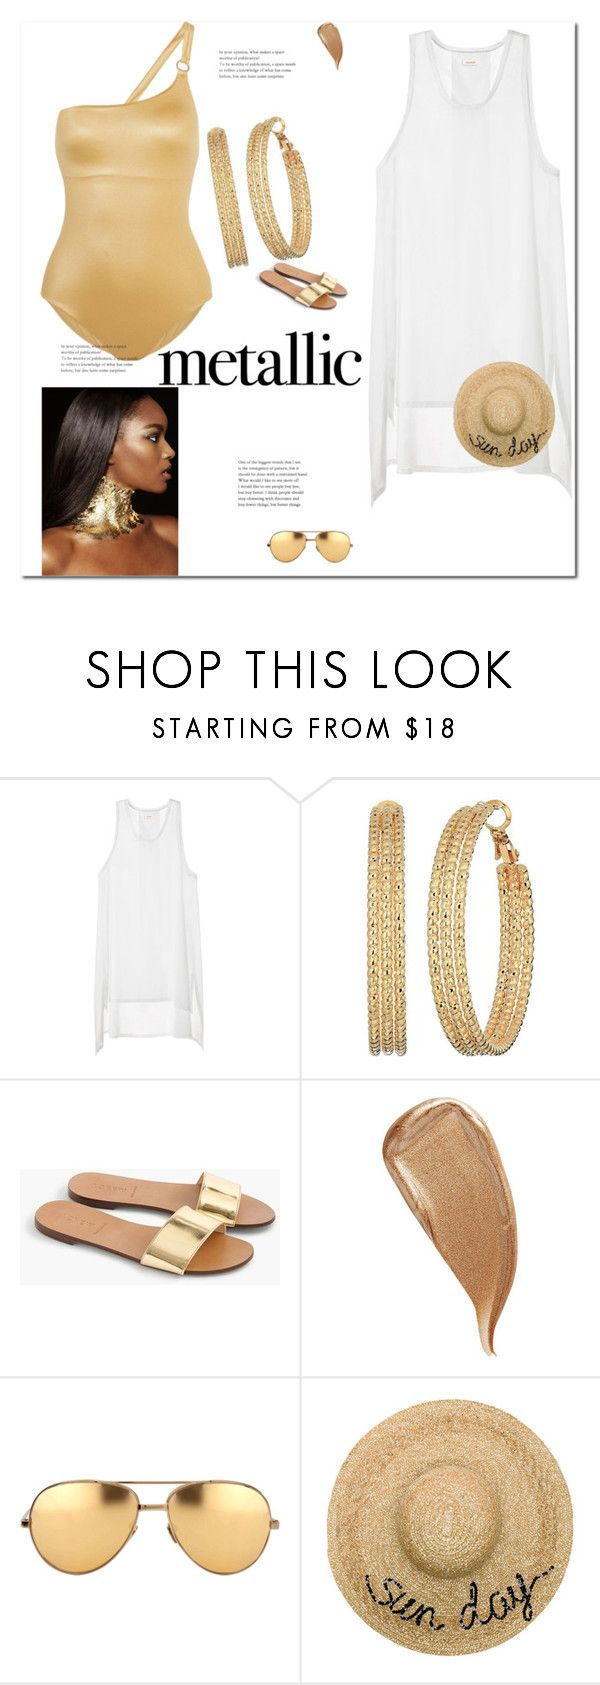 """""""Living My Life Like It's Golden"""" by bryleq4484 ❤ liked on Polyvore featuring GUESS, J.Crew, Kevyn Aucoin, Linda Farrow, Eugenia Kim, golden and metallicswimwear"""